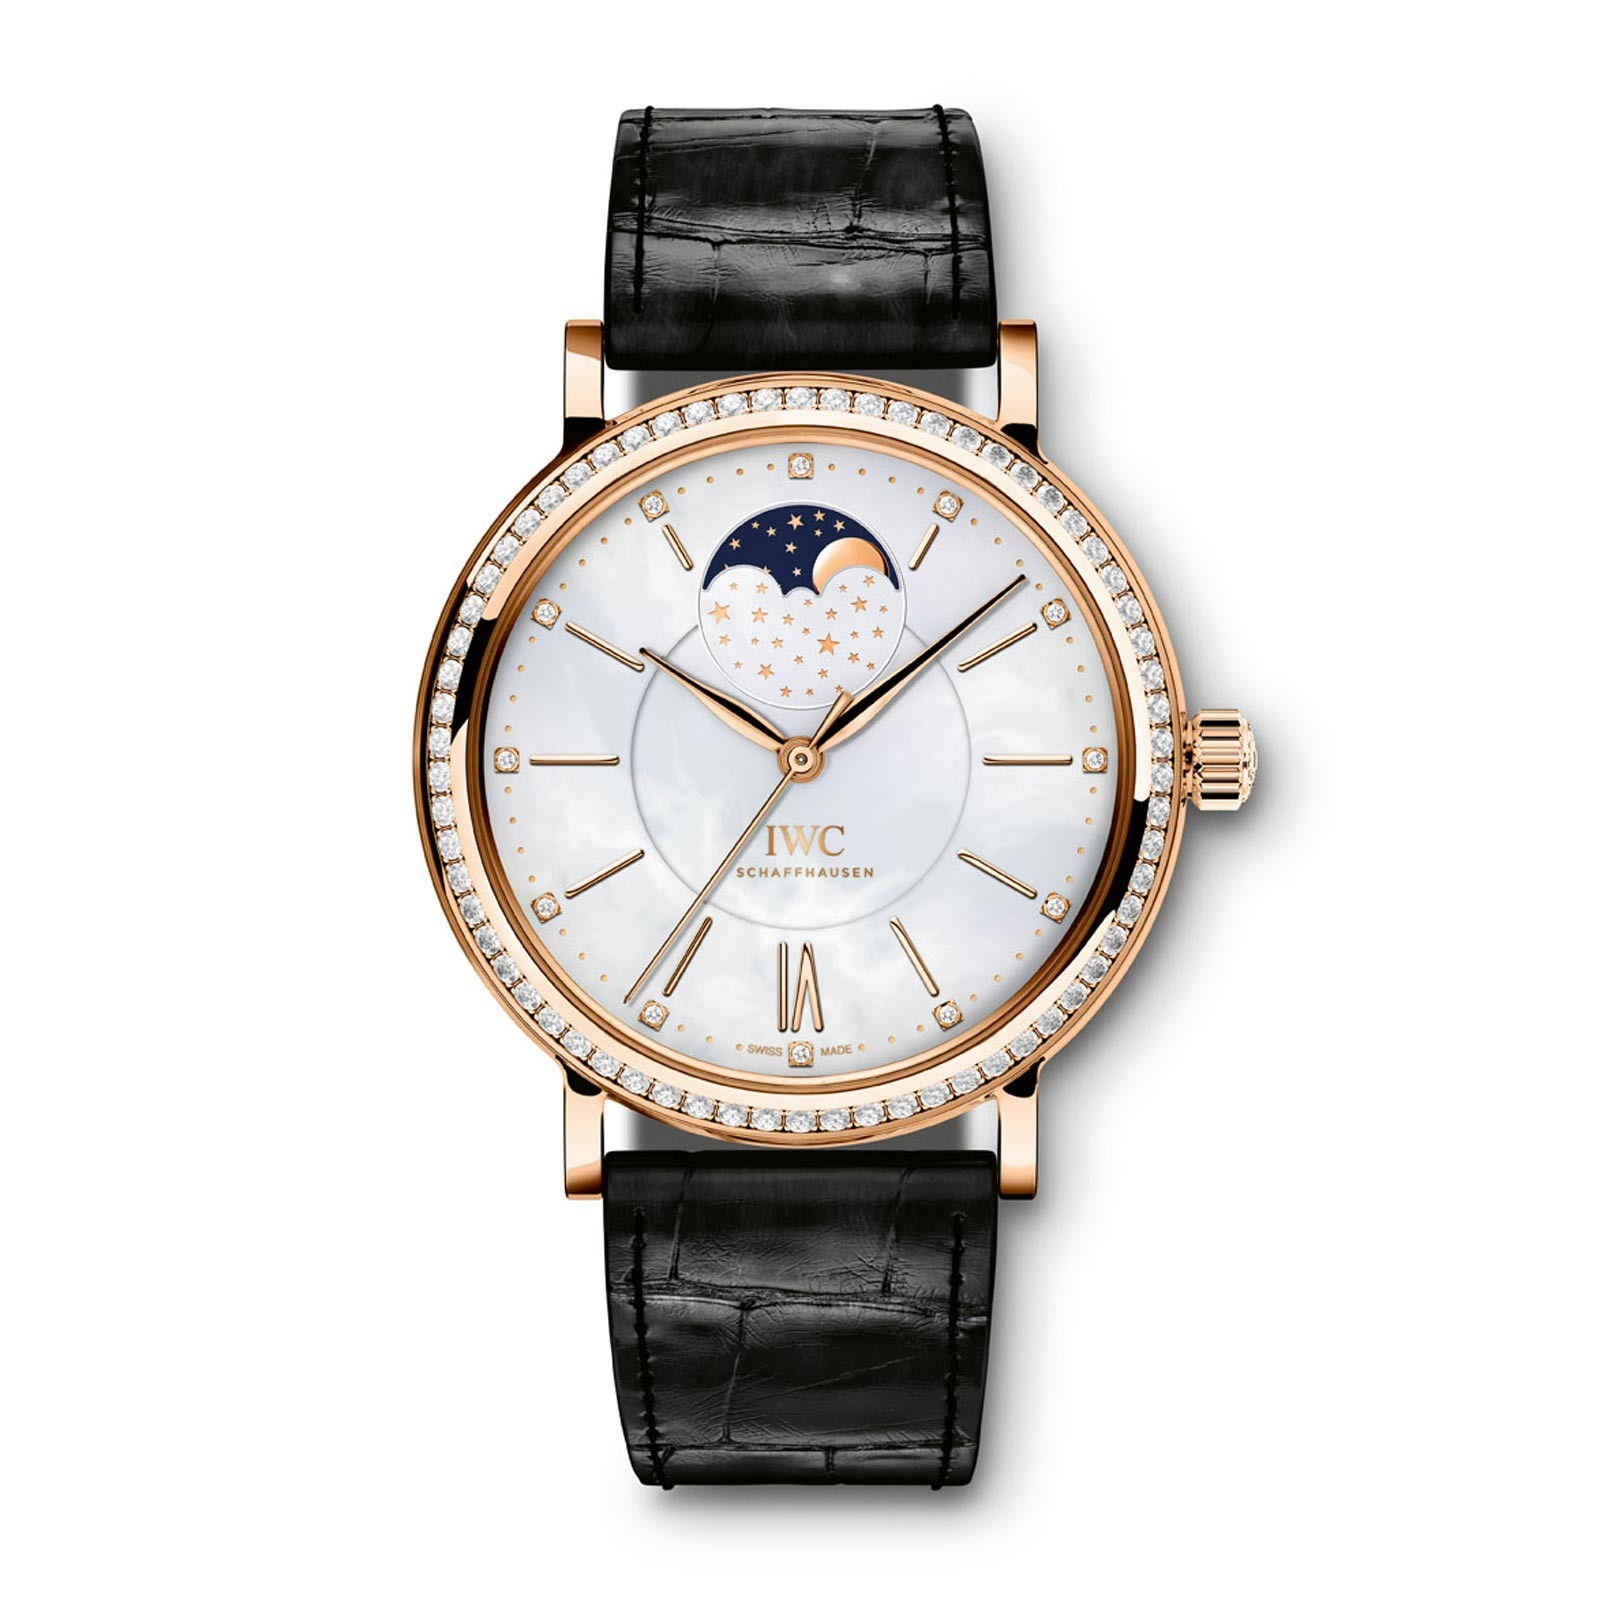 IWC Portofino Midsize Automatic Moon Phase - Red Gold